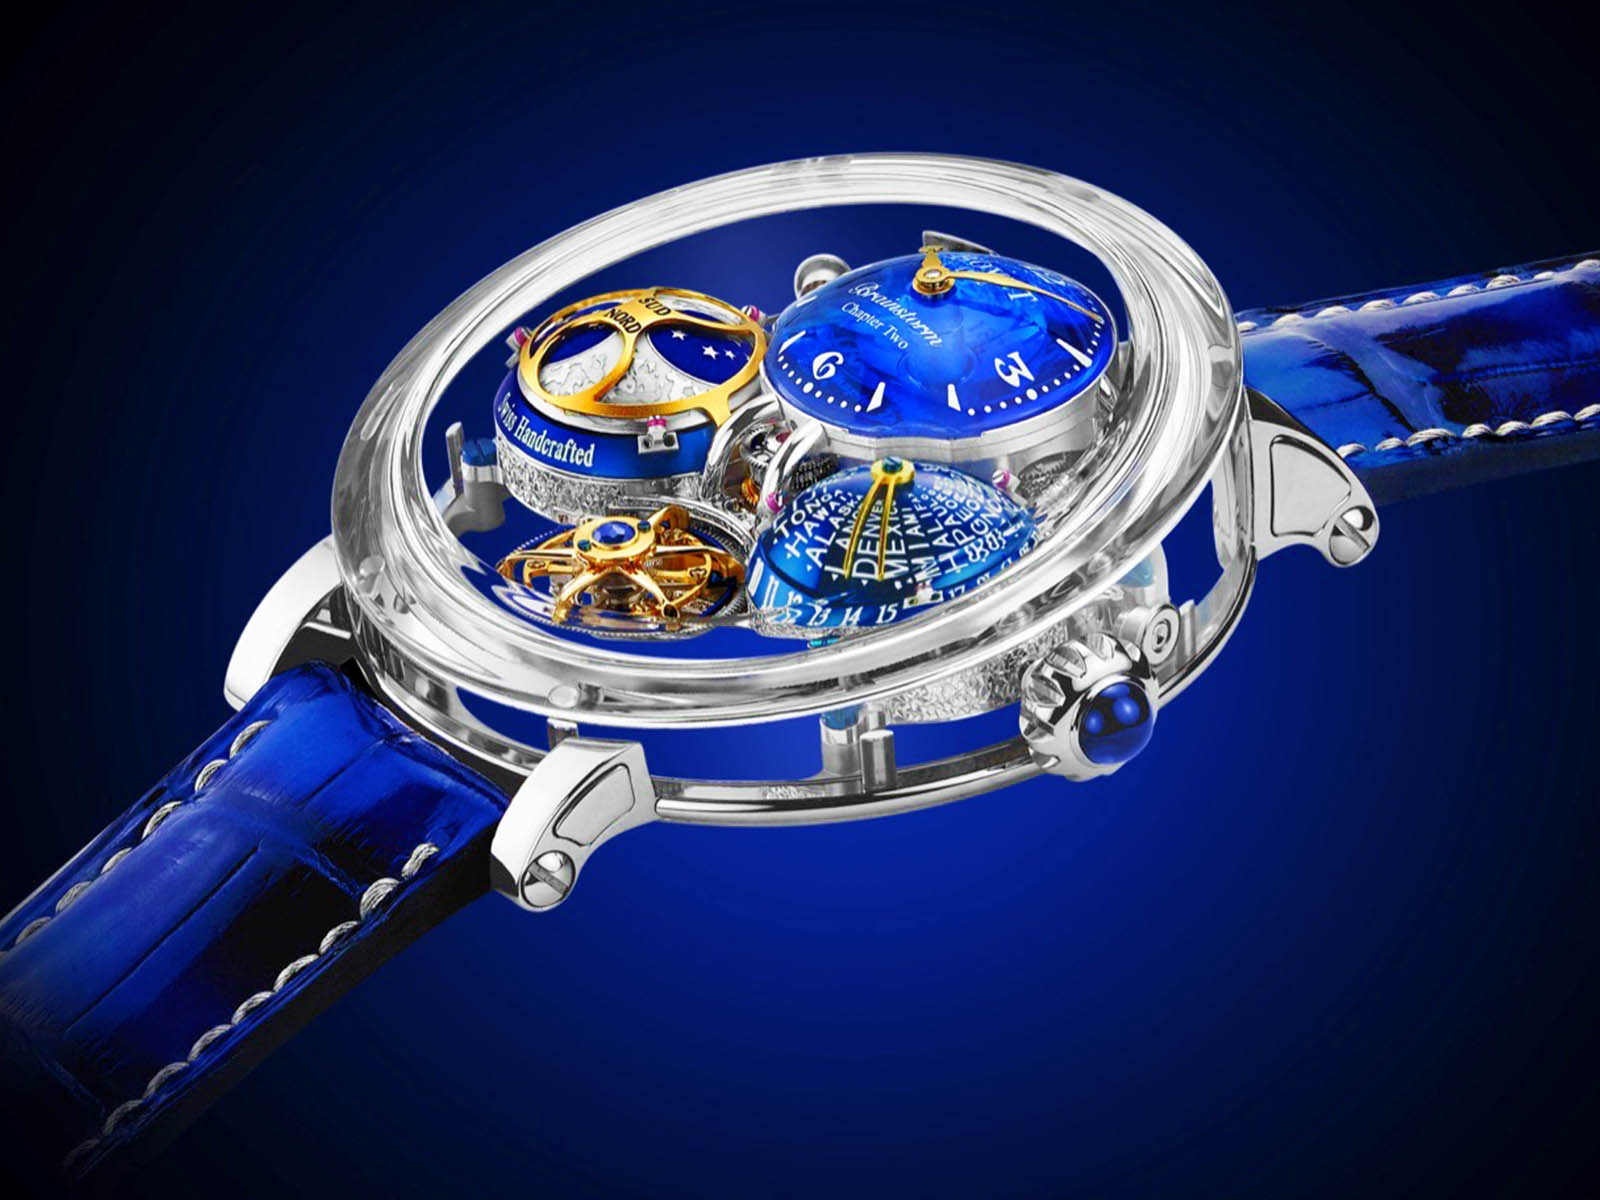 r26c2-001-bovet-1822-recital-26-brainstorm-chapter-2-1.jpg